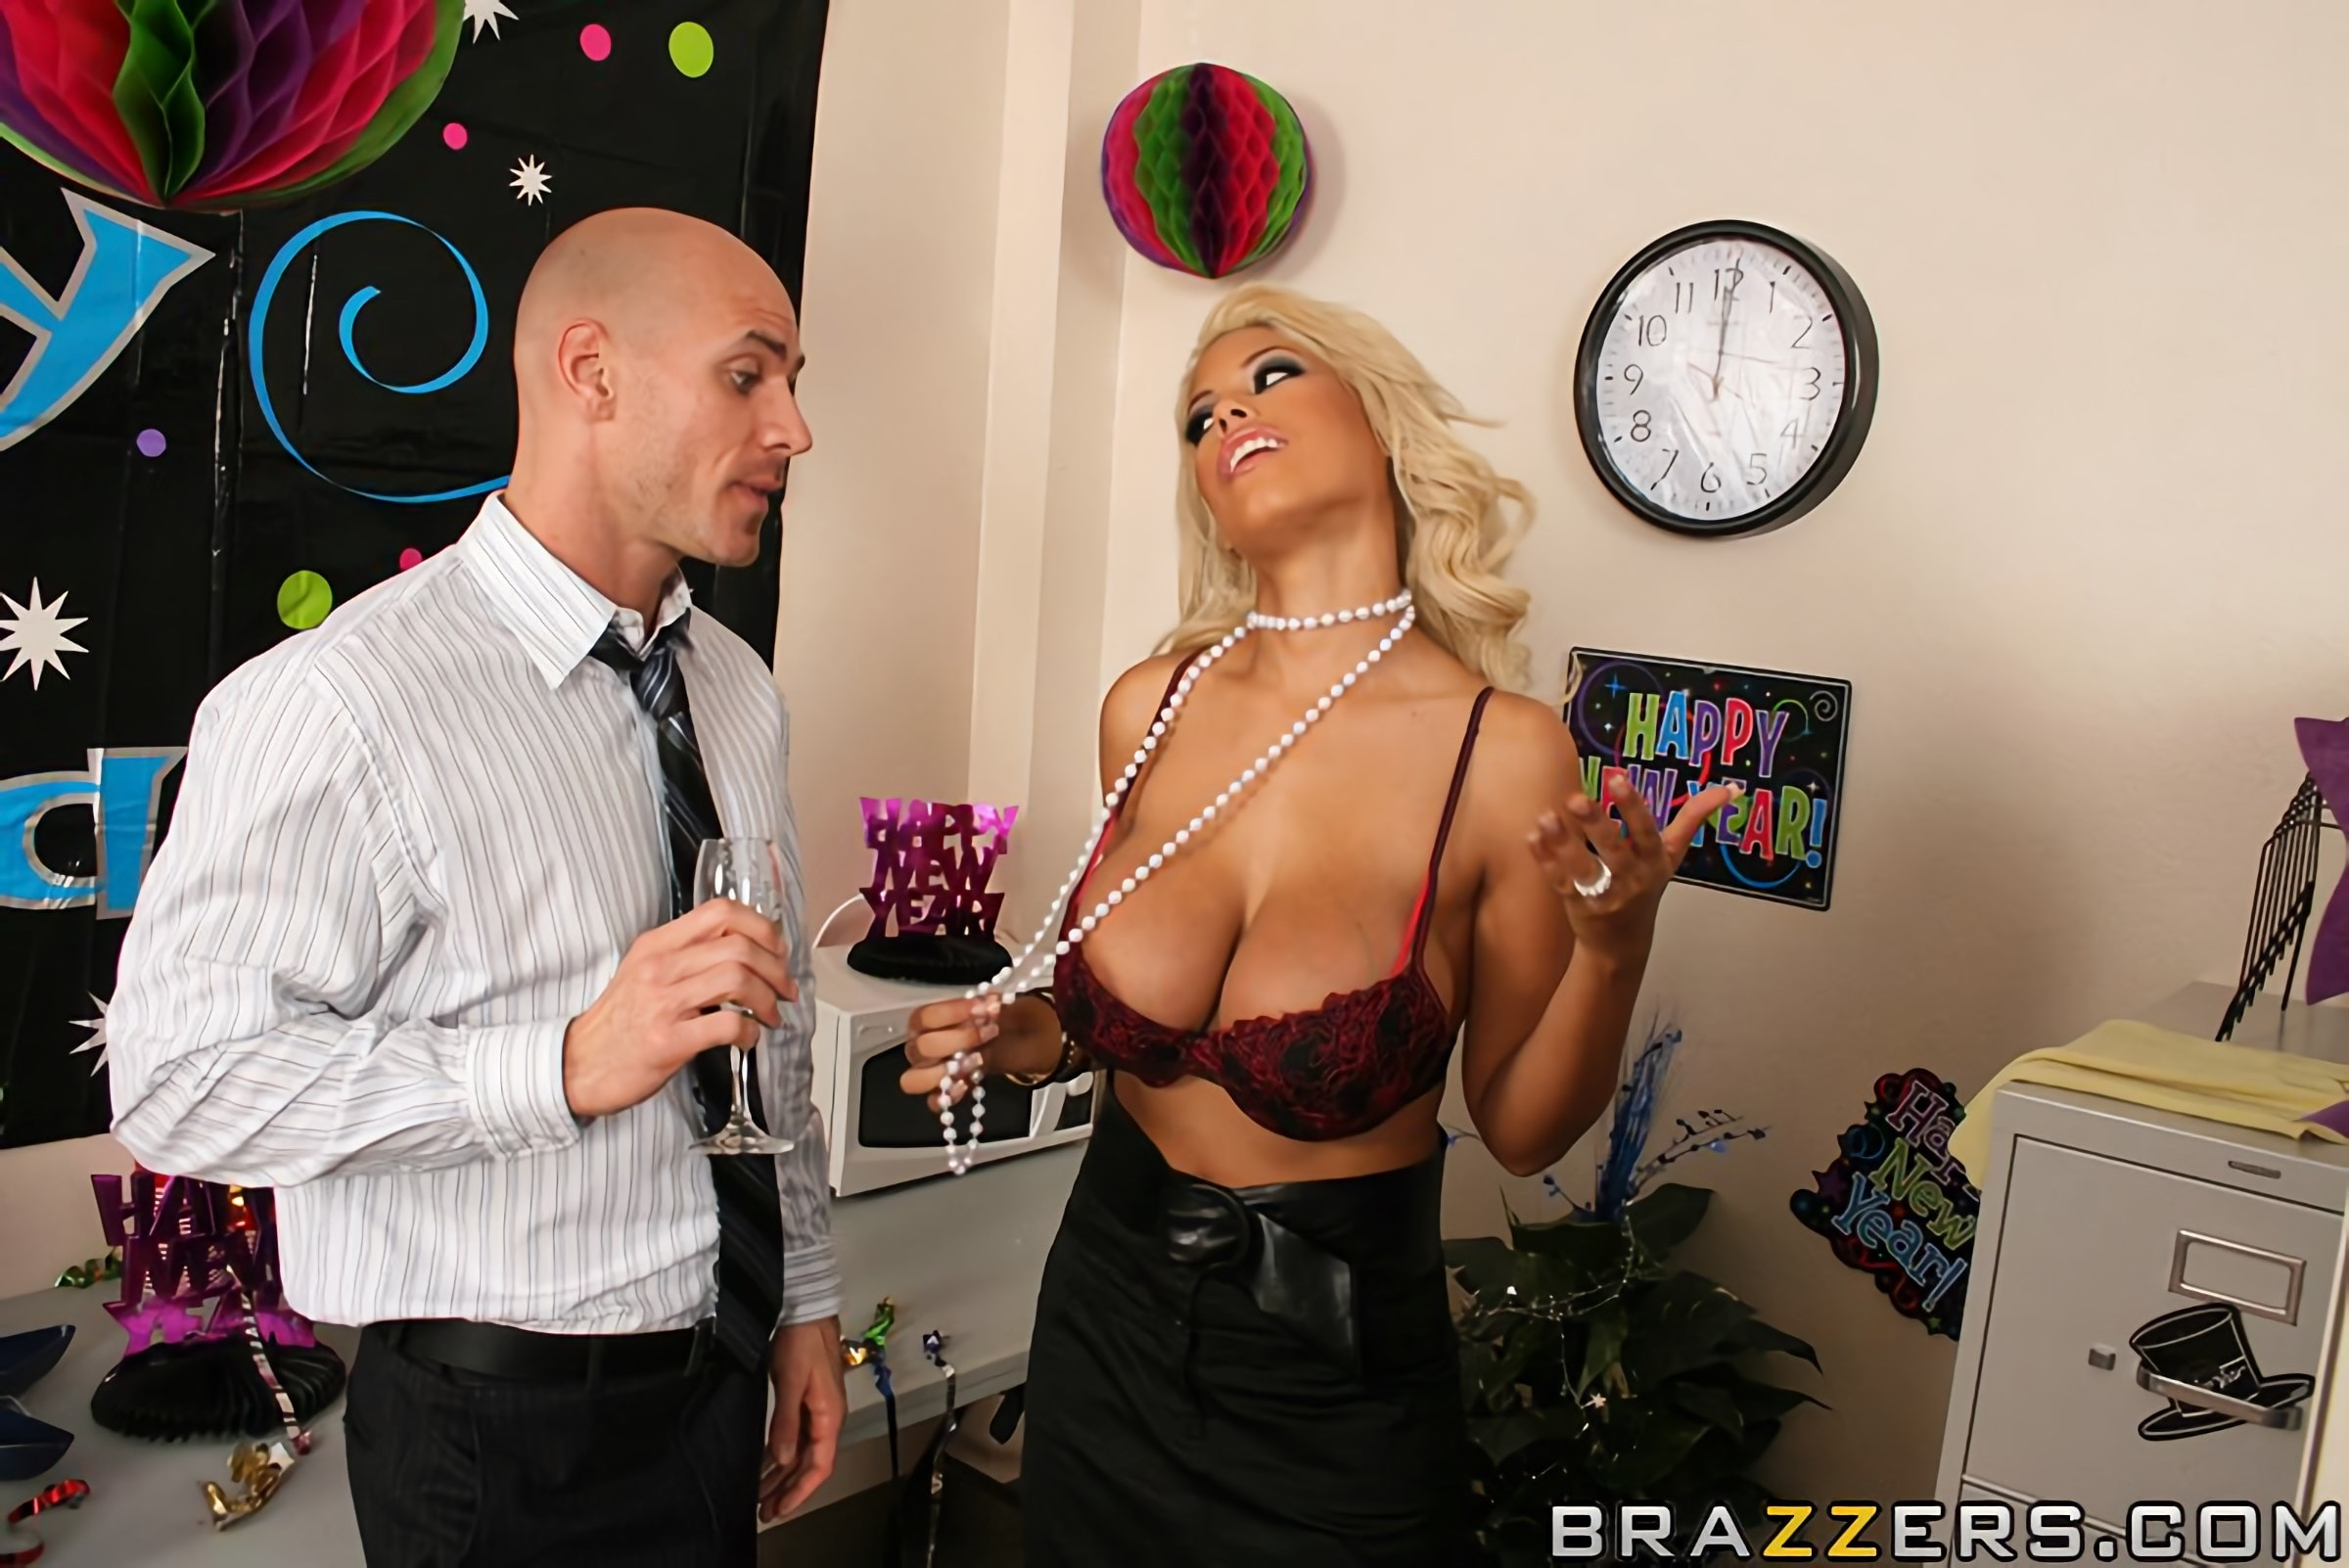 Brazzers 'Starting The New Year With A Bang' starring Bridgette B (Photo 7)